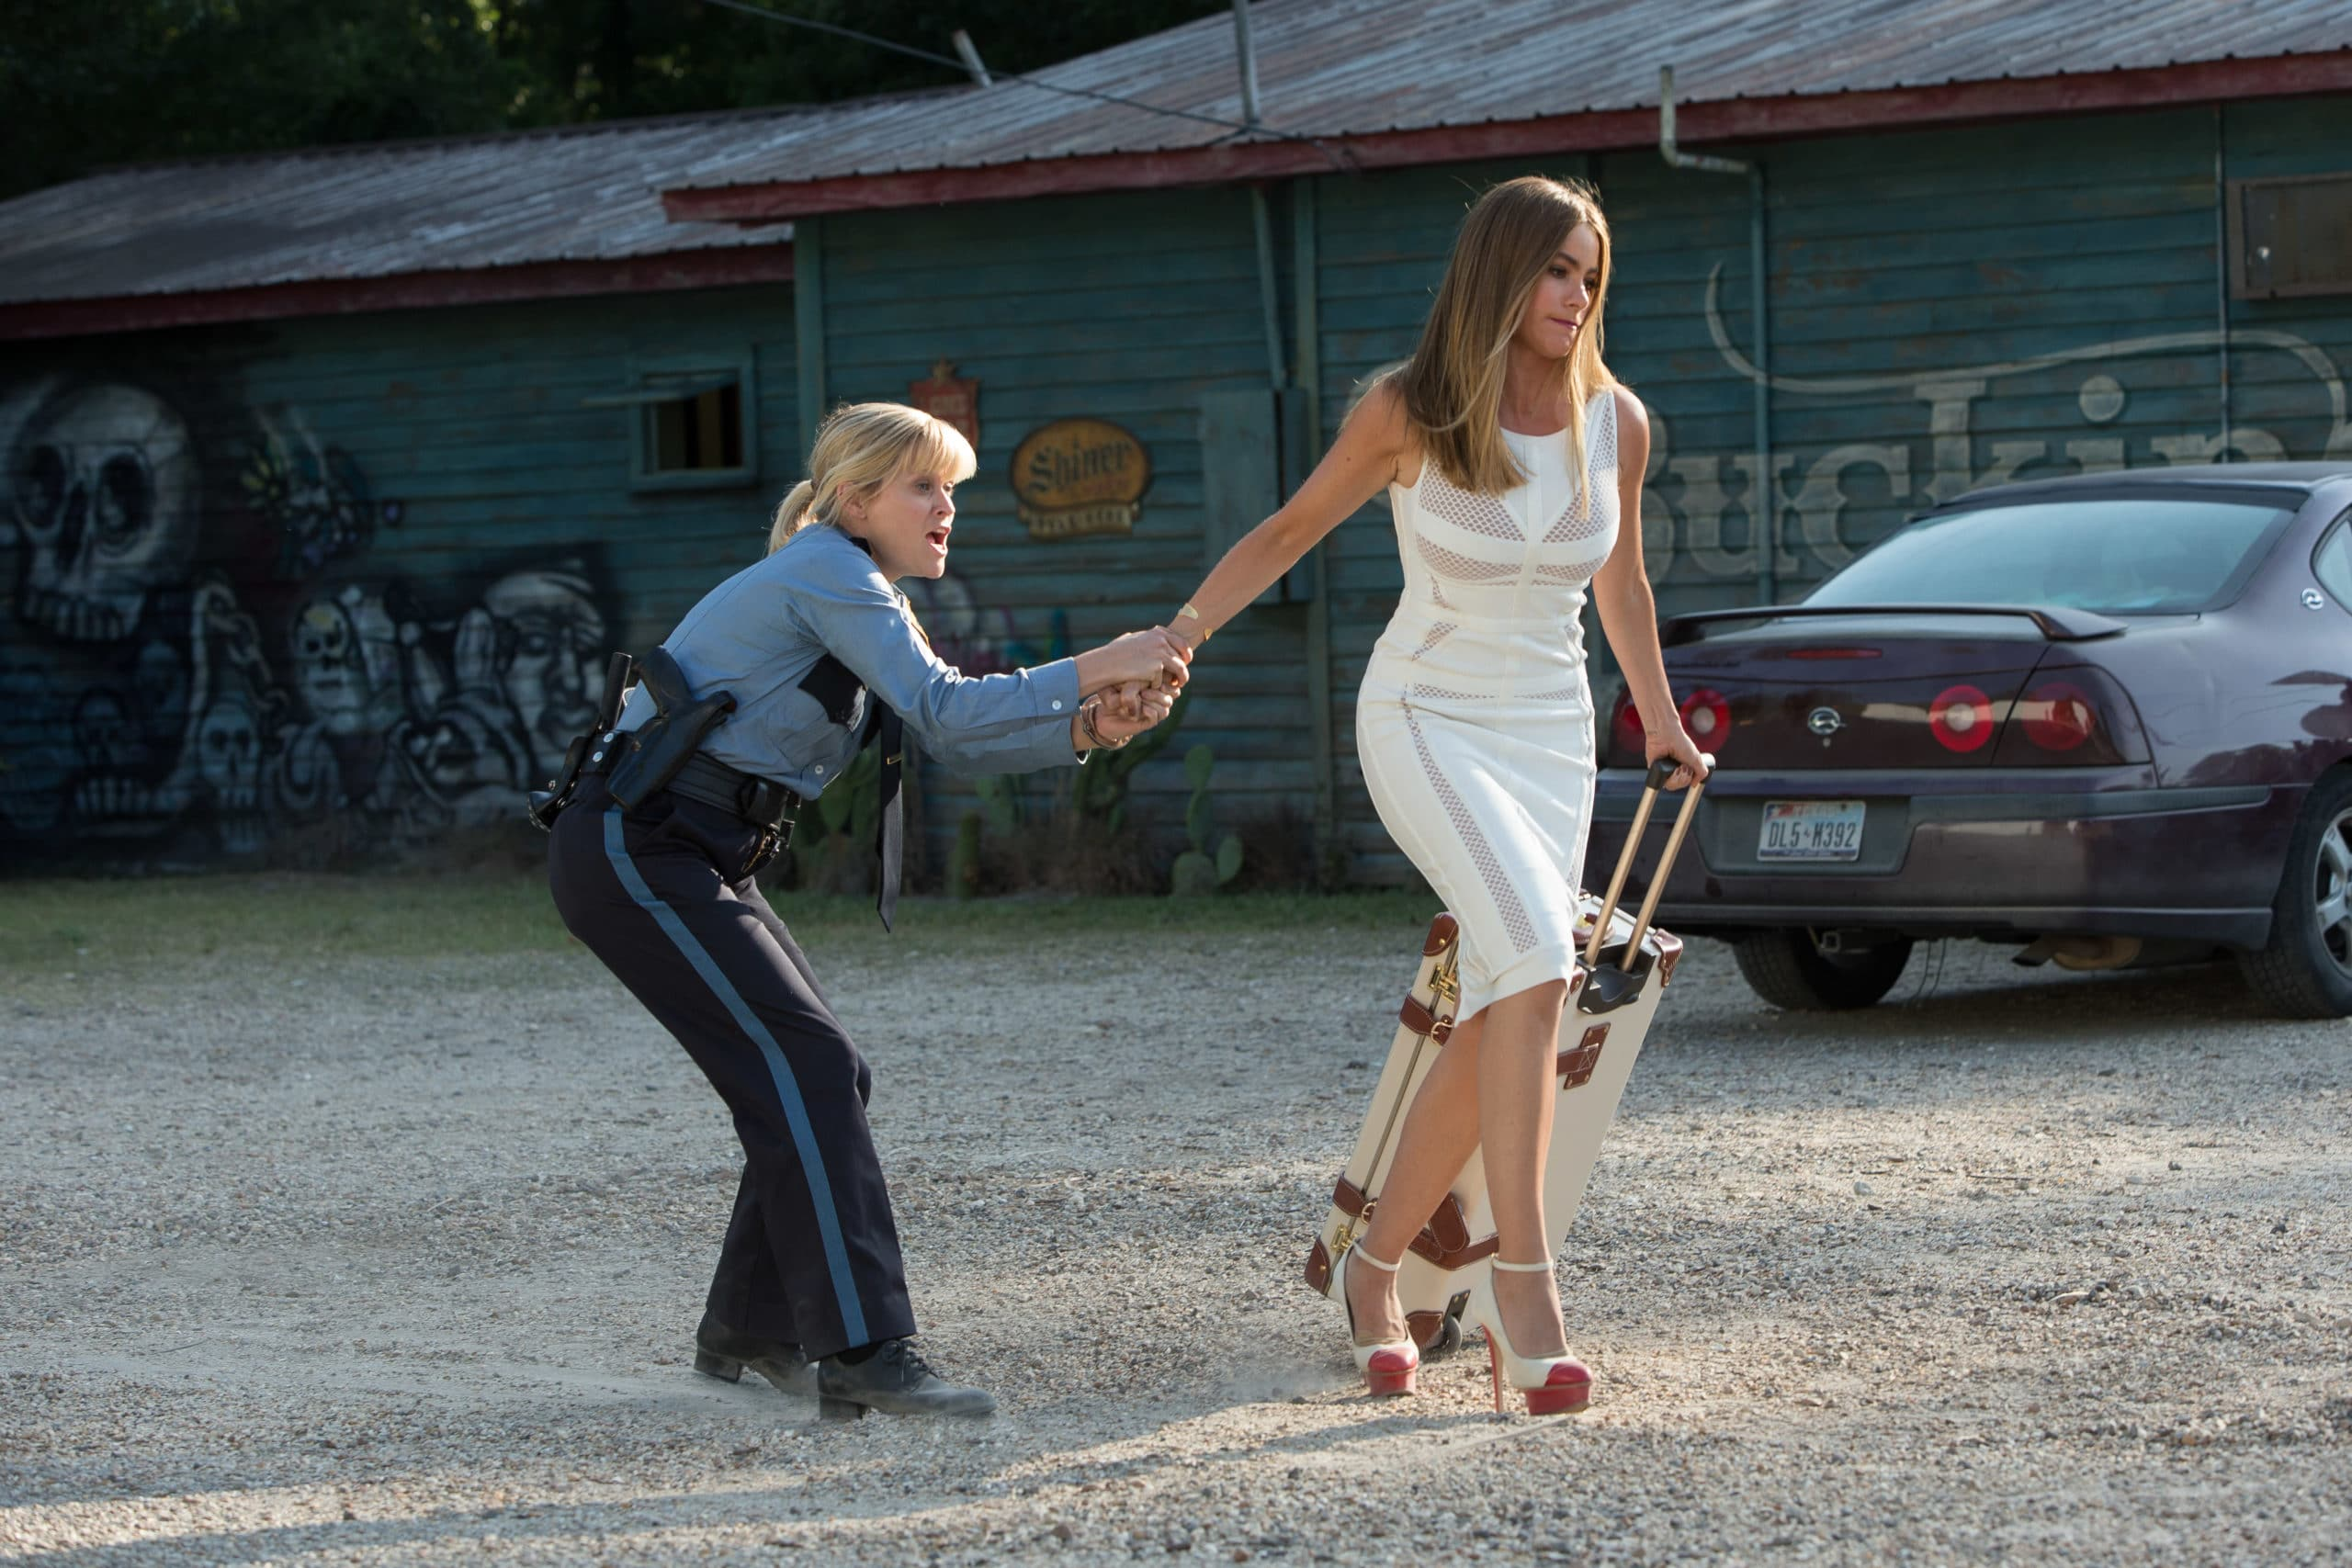 Hot Pursuit will having you laughing in your seat